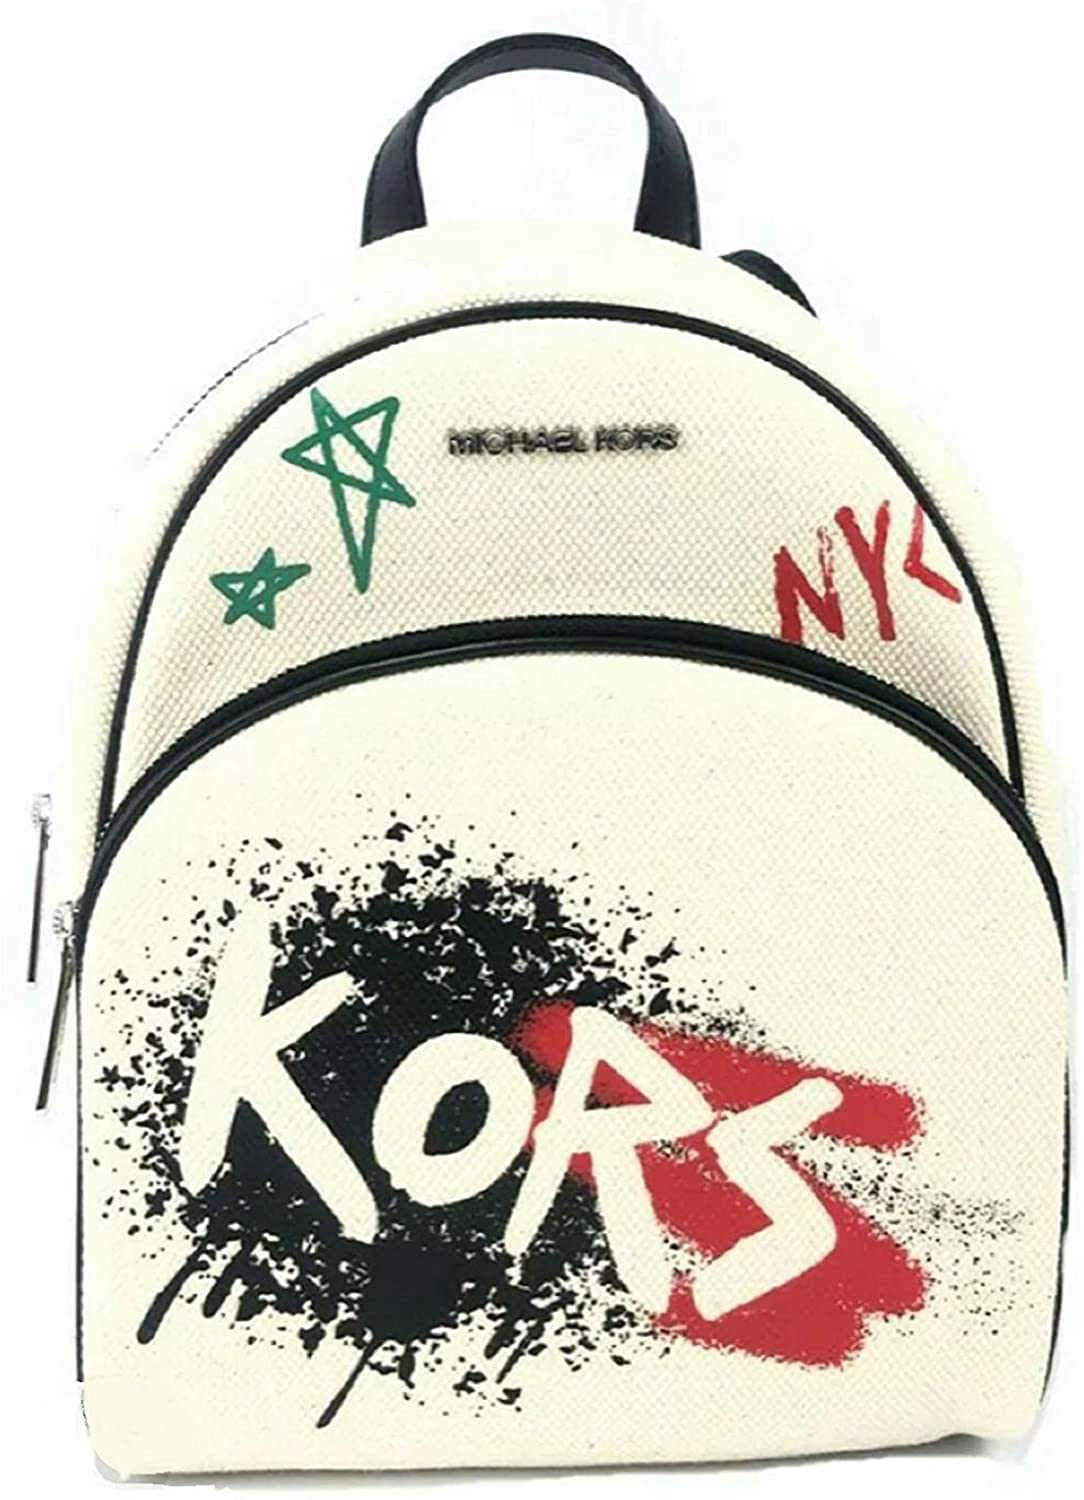 Michael Kors Medium Abbey Graffiti Backpack Bookbag Bag Light Cream